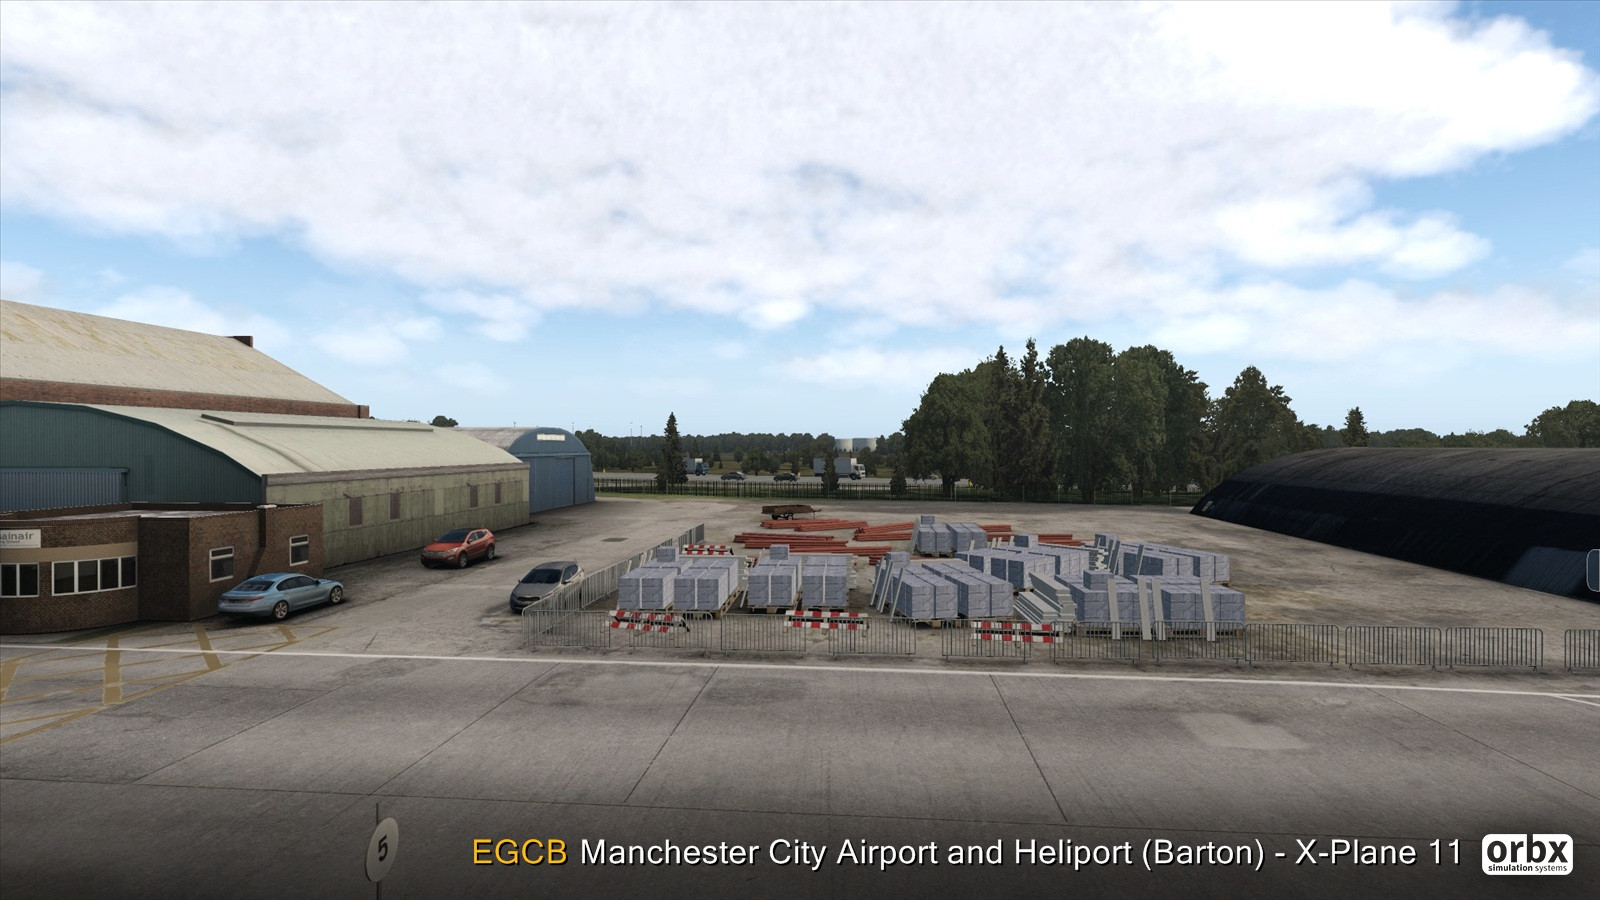 EGCB Manchester City Airport and Heliport (Barton) - X-Plane 11